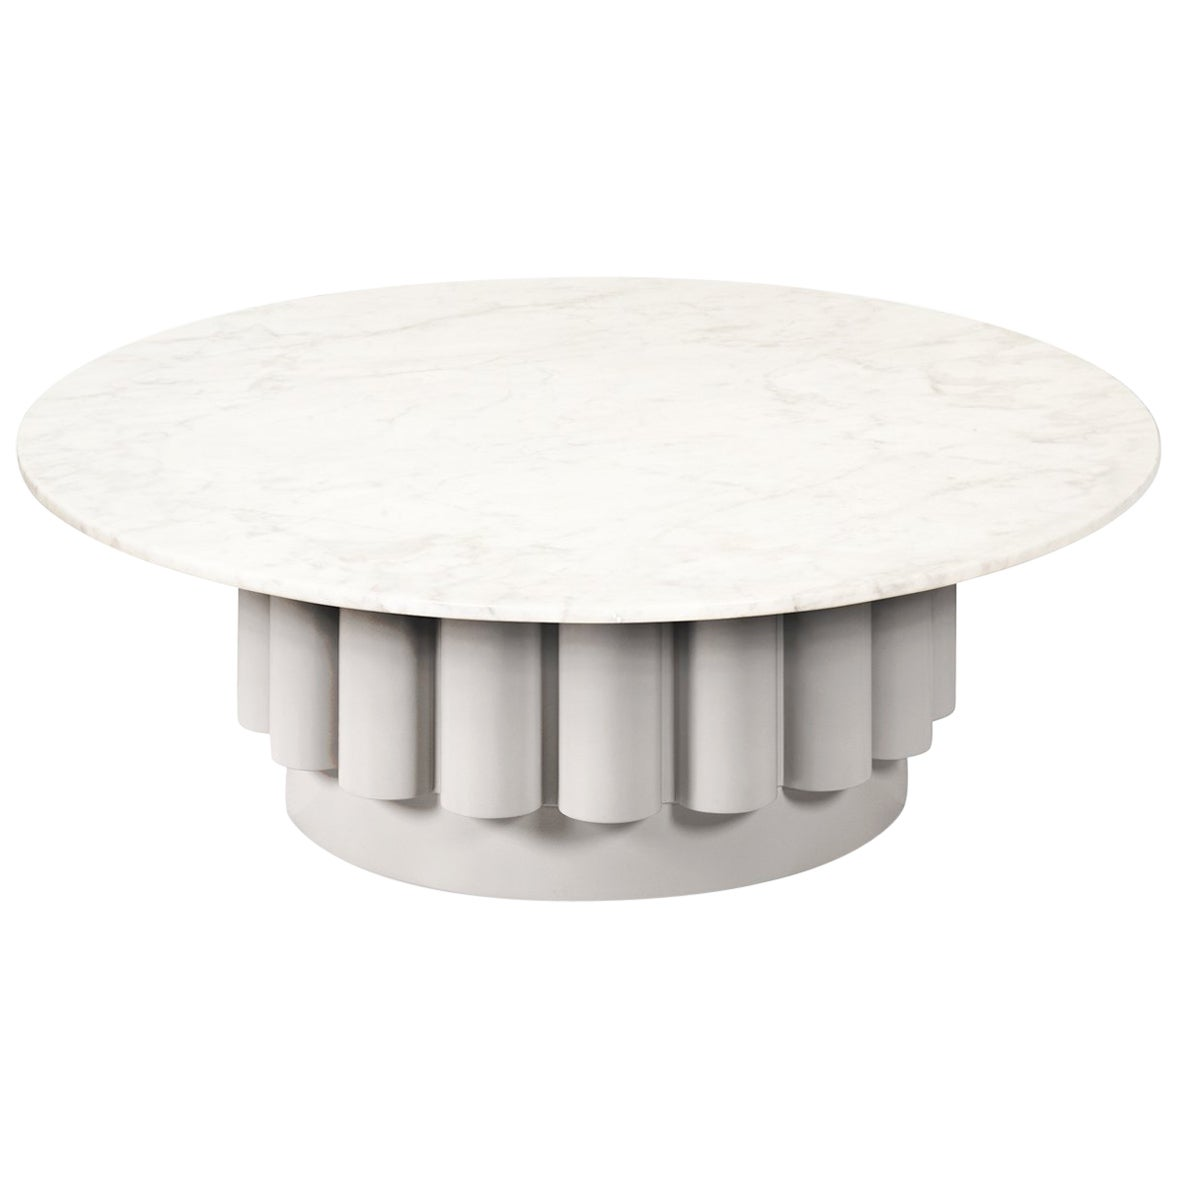 Round White Carrara Marble-Top Coffee Table with Fluted Base